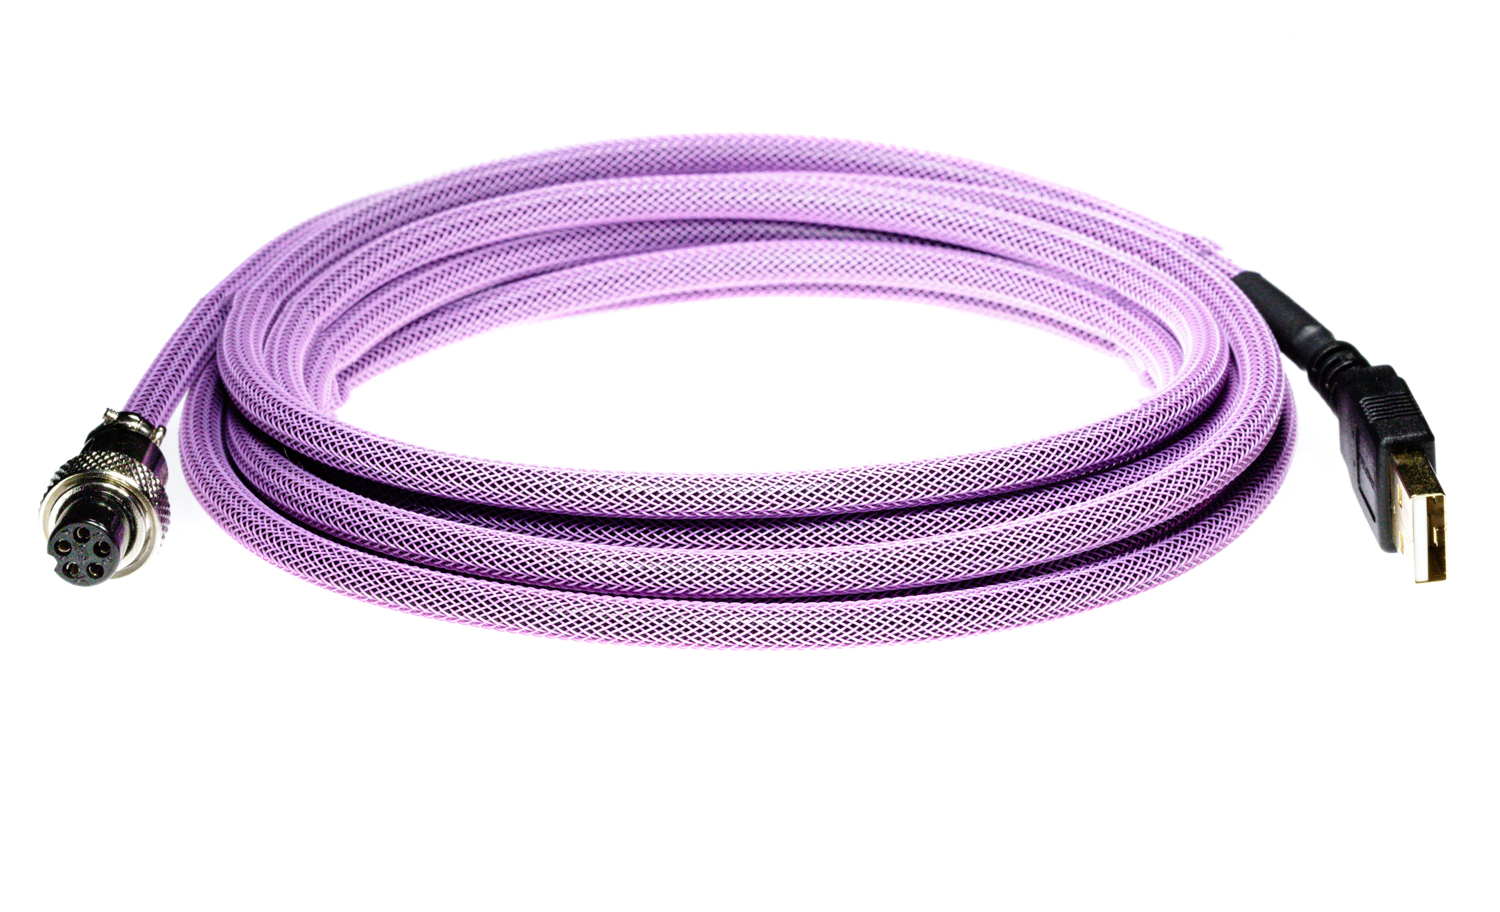 Pro Cable with Purple TechFlex USB Cable